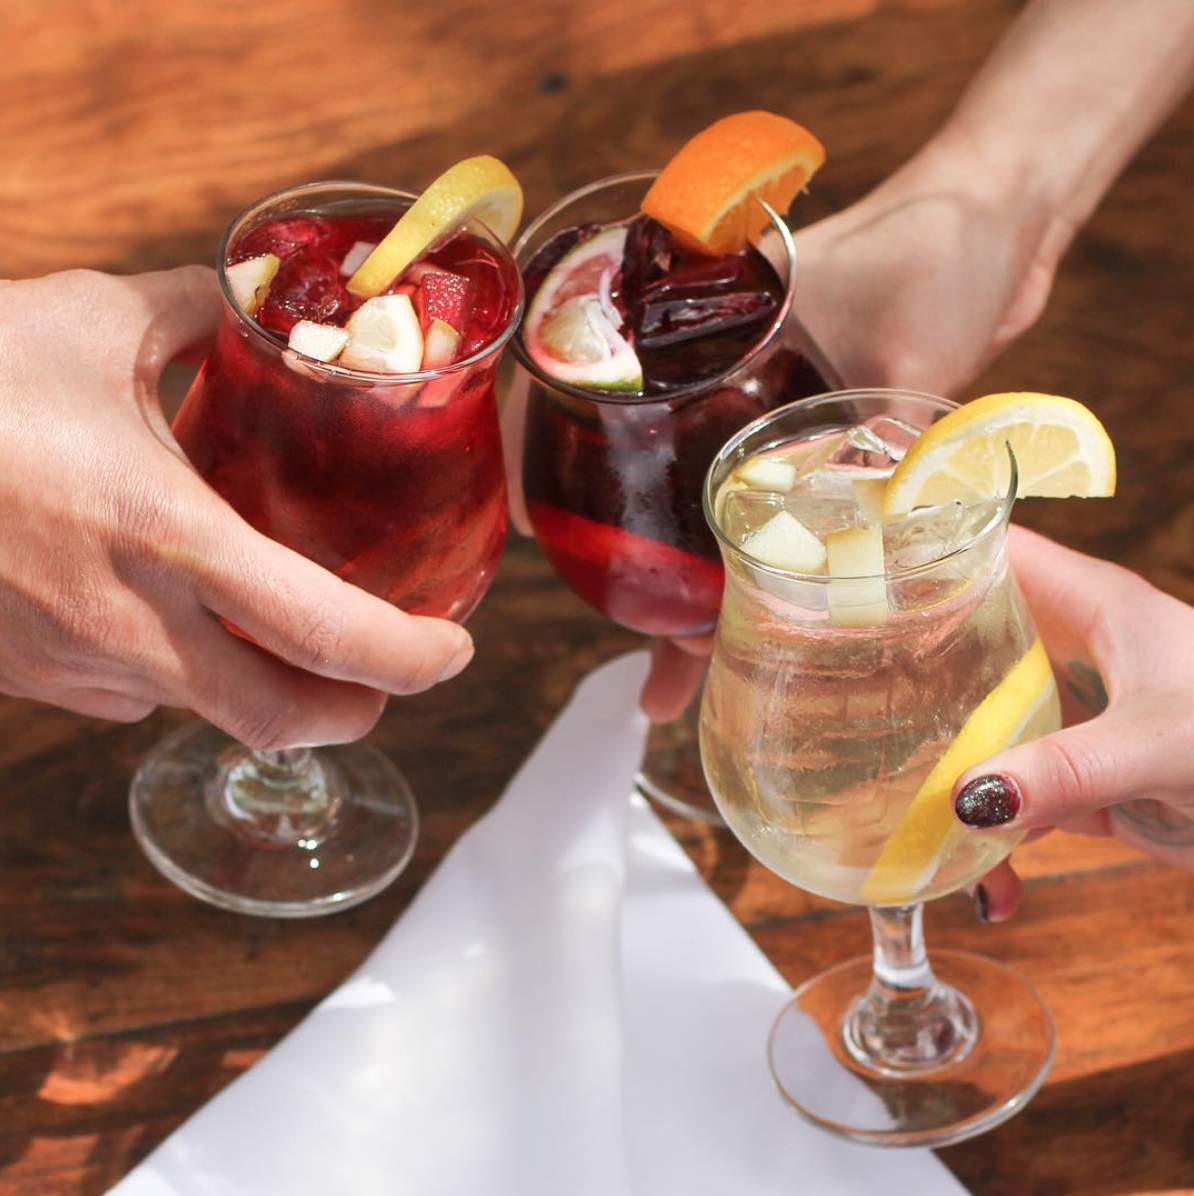 It's never too late to grab a chilled glass of Habana's famous sangria | Photo courtesy of Habana via Instagram